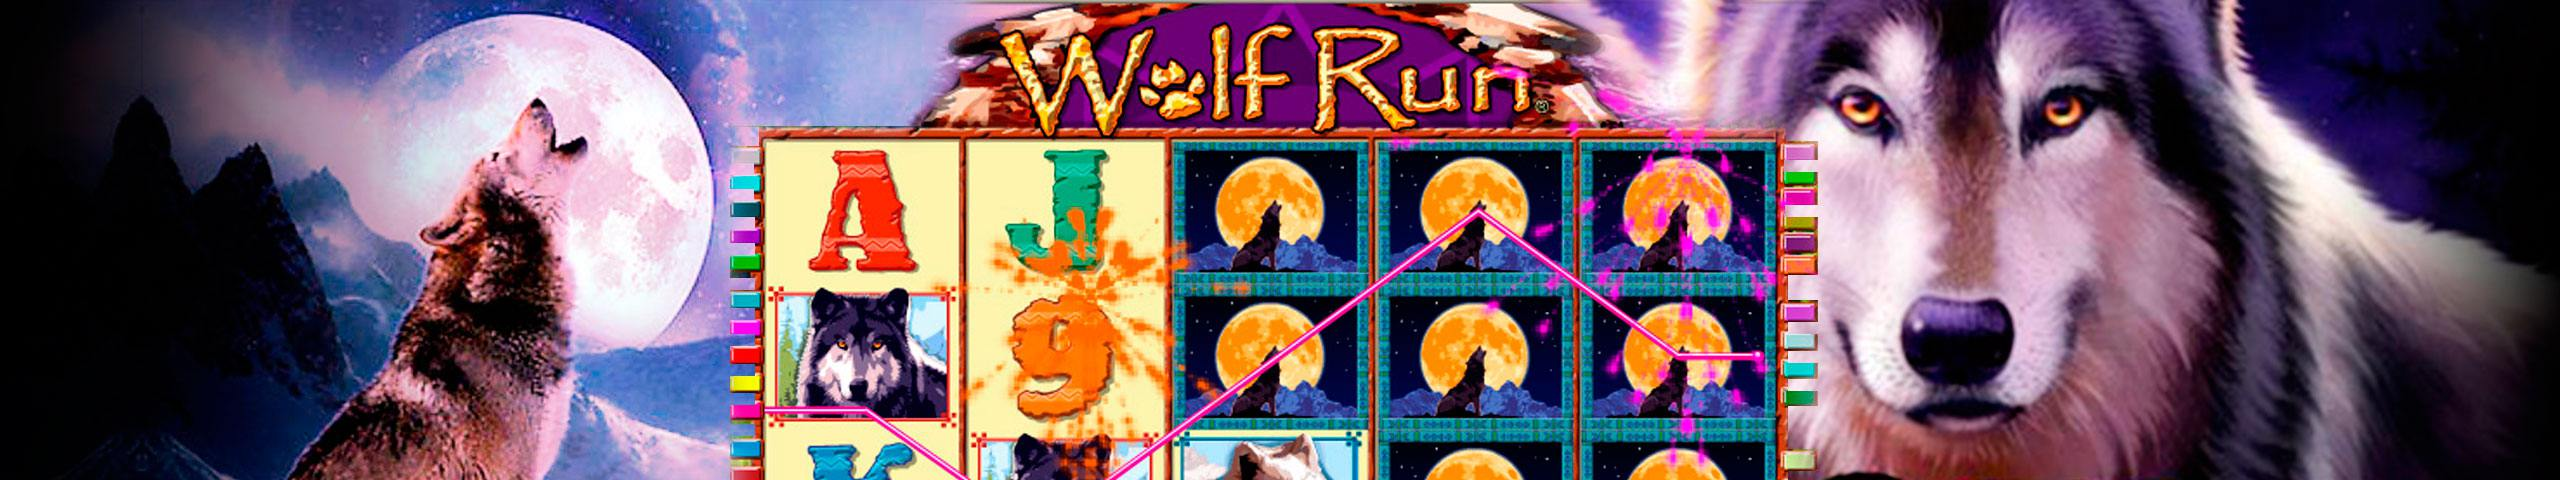 Wolf Run spelautomater IGT (WagerWorks)  wyrmspel.com